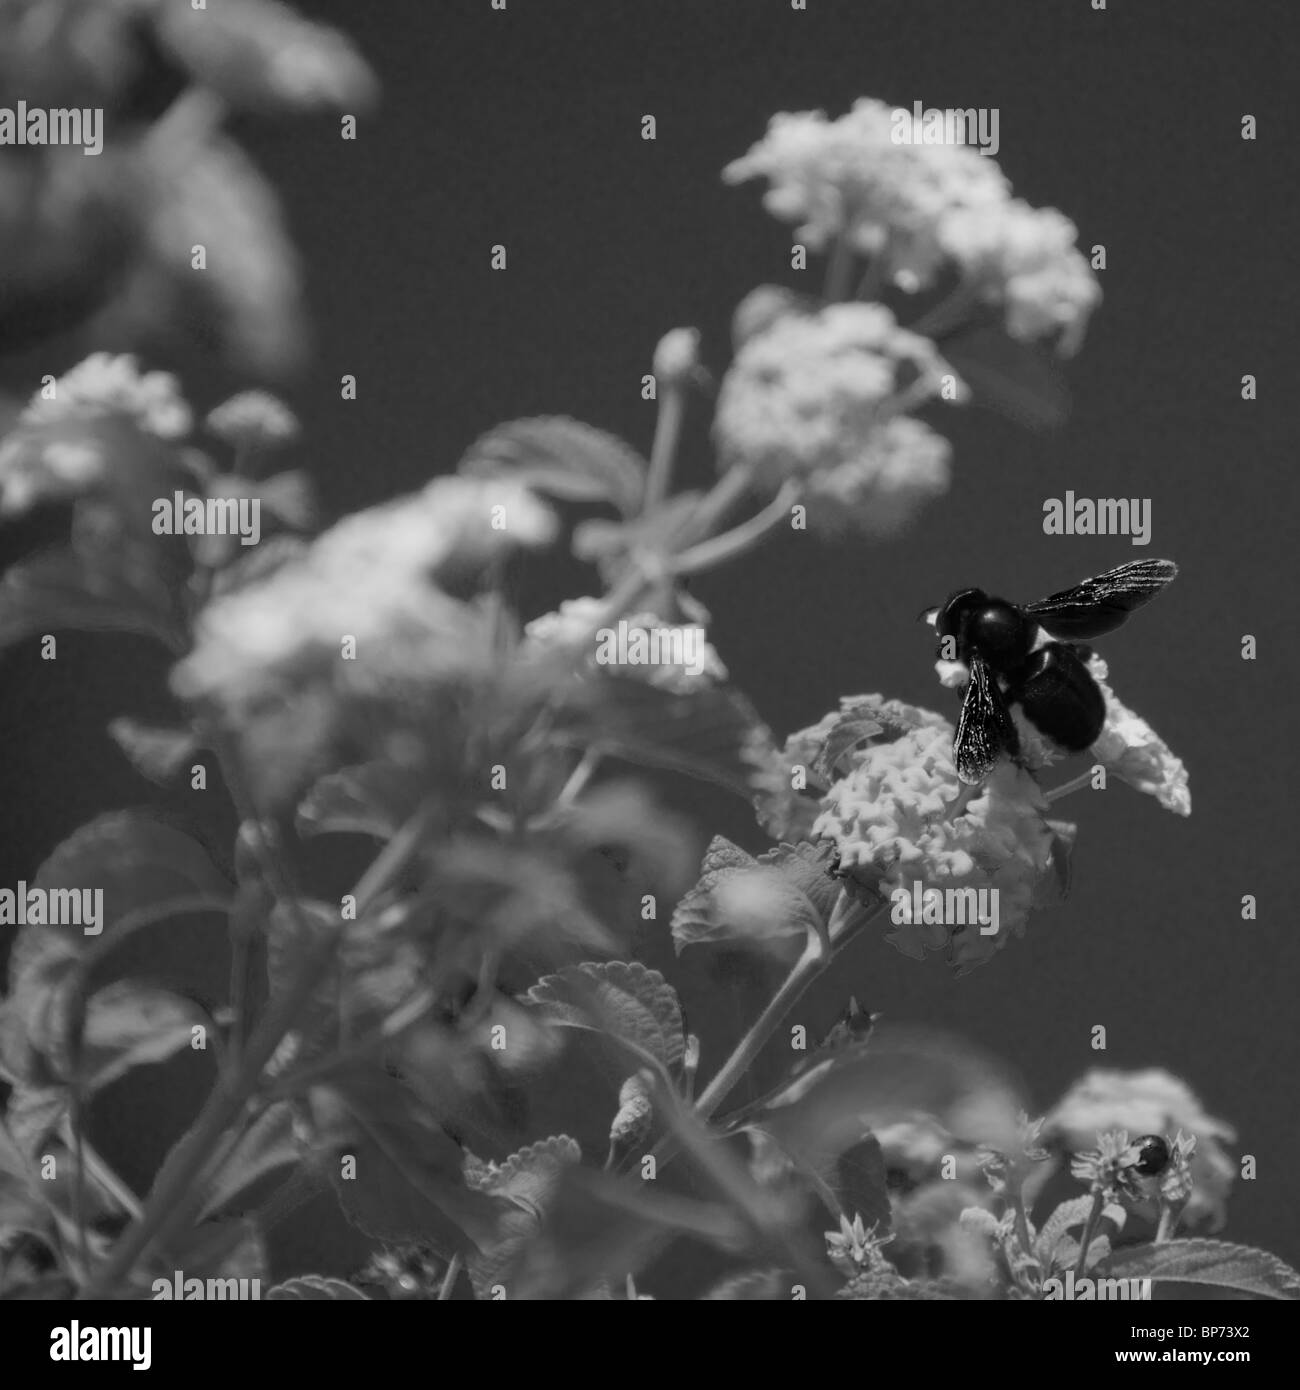 Carpenter Bee (Black Bee) collecting nectar from a flower. - Stock Image